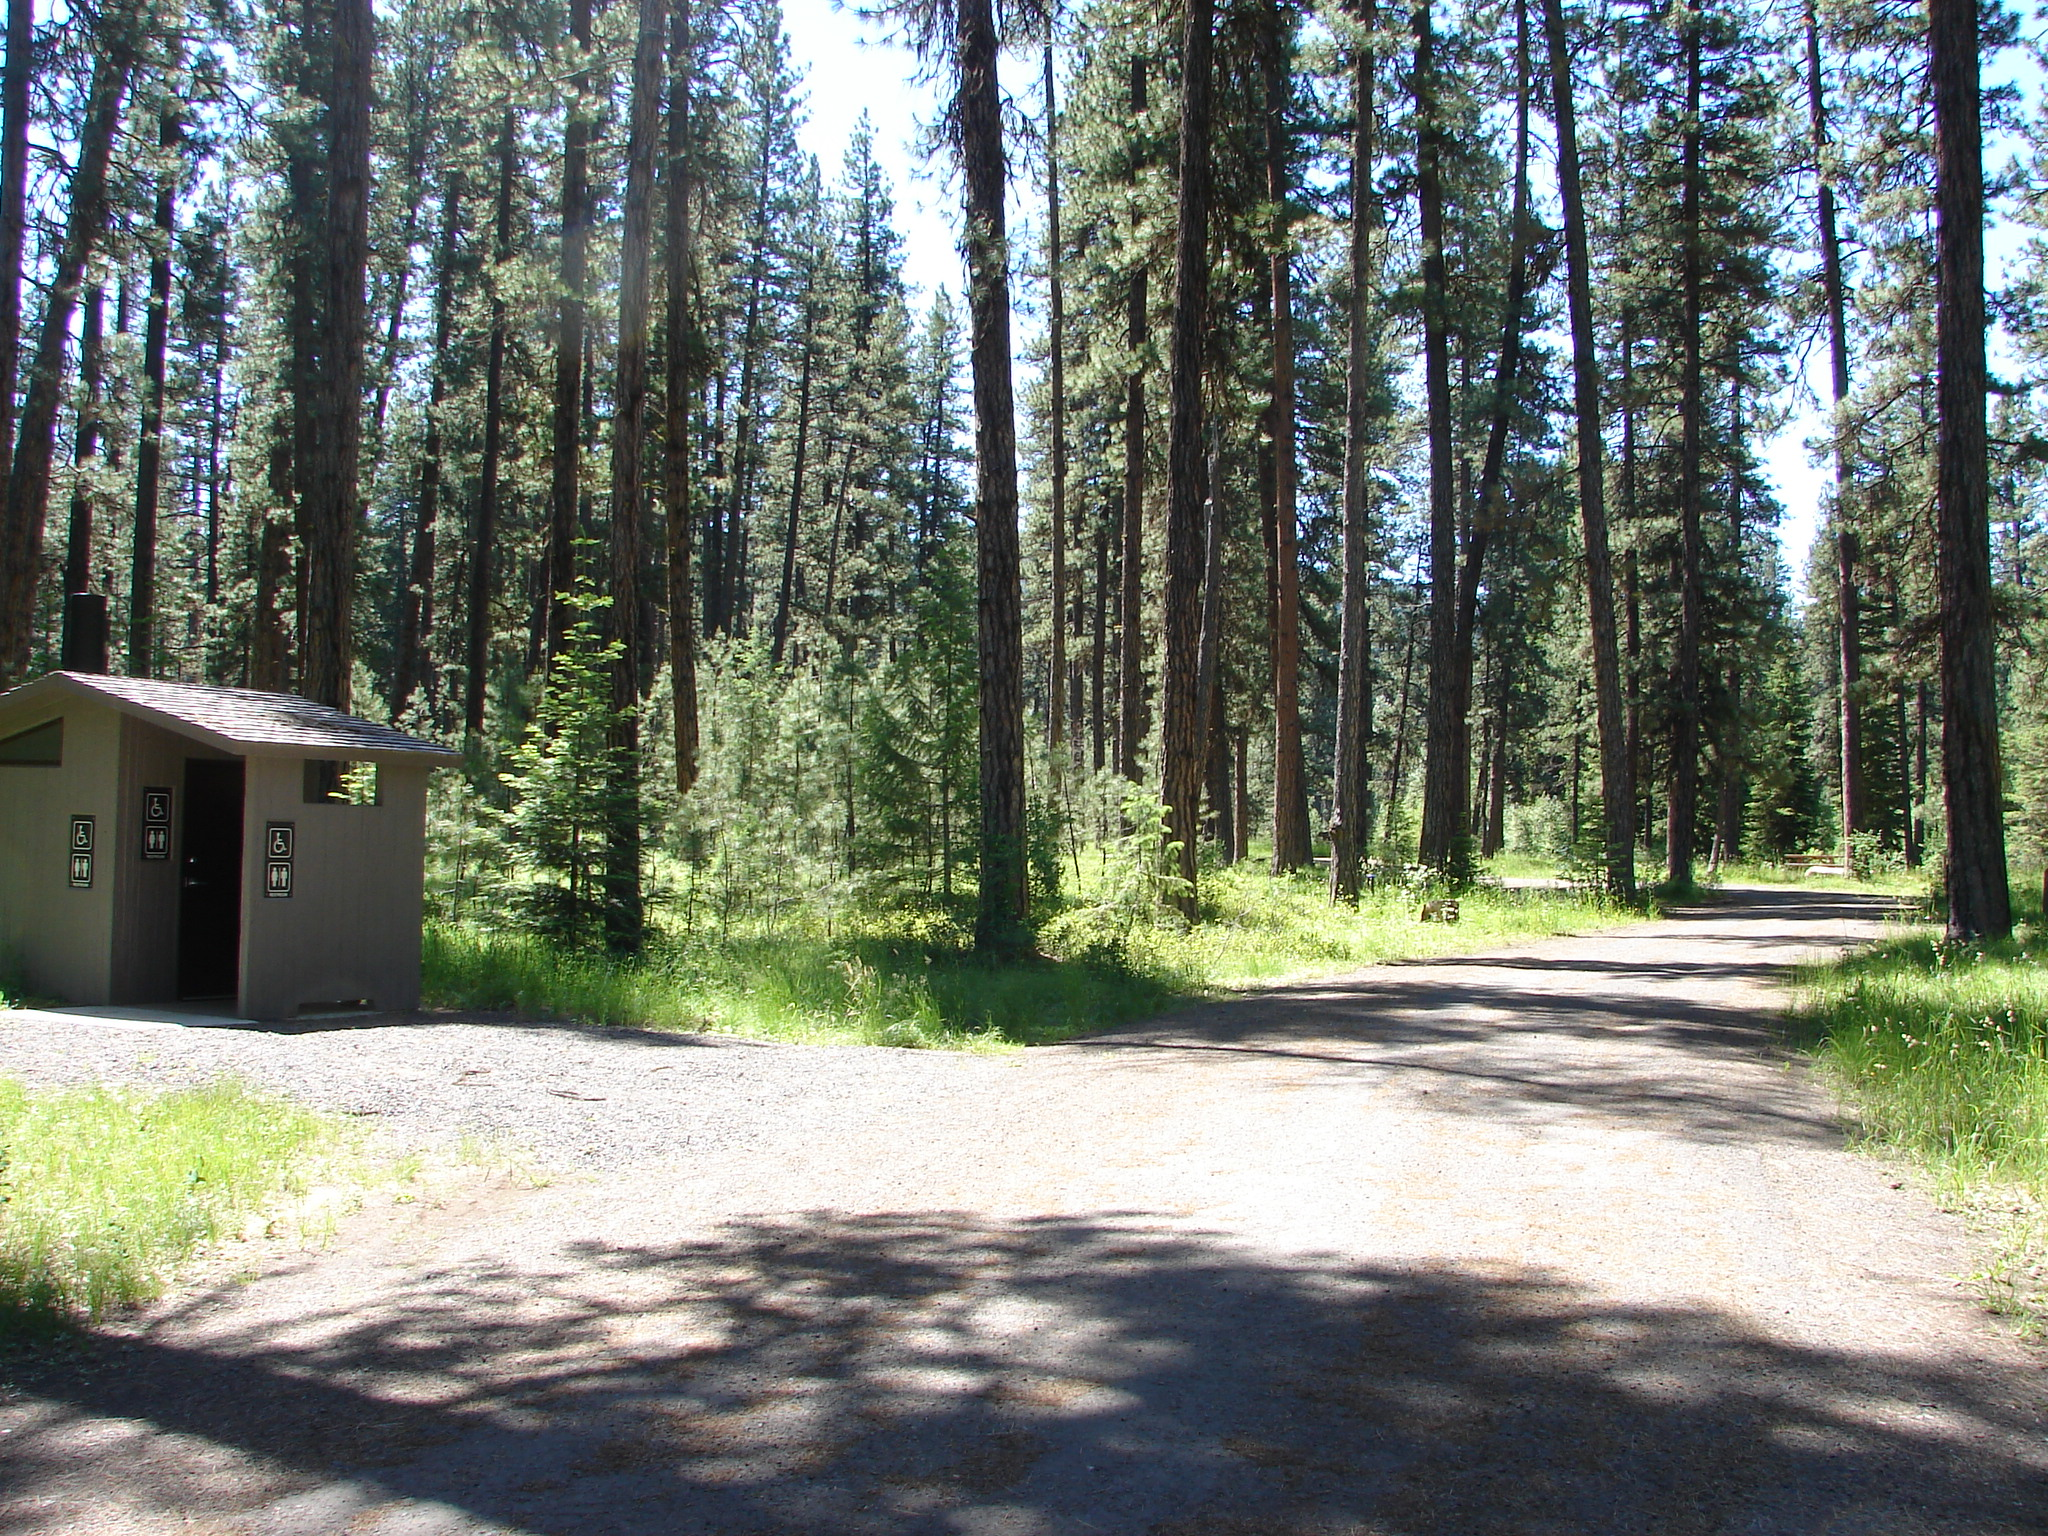 Forest campground under large ponderosa pine trees